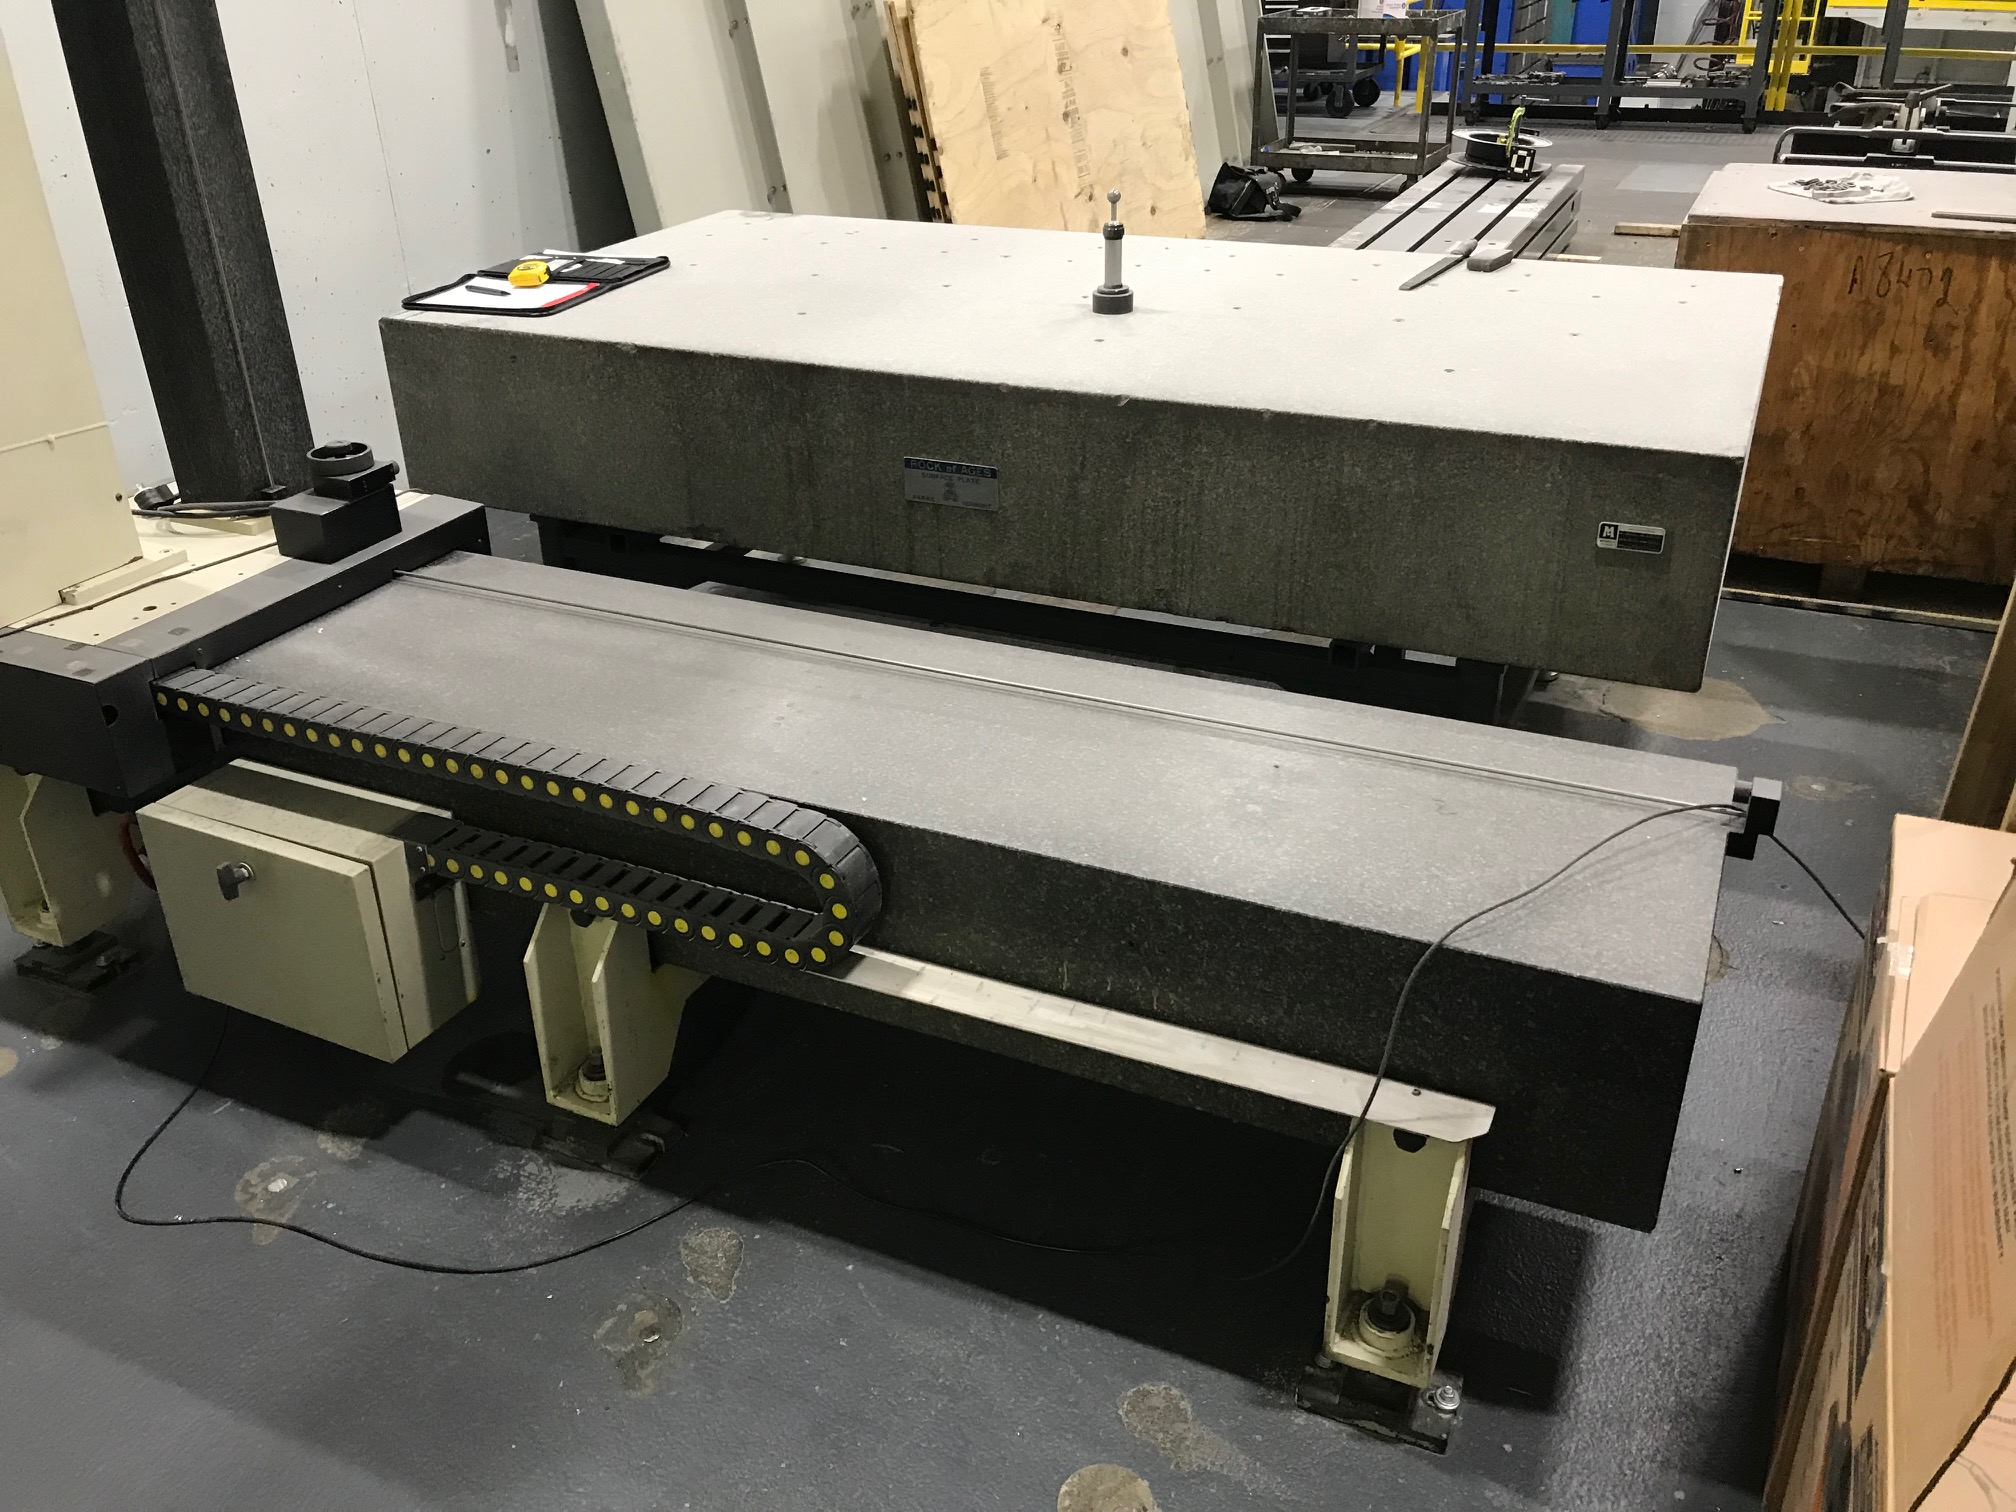 """Poli Globo Coordinate Measuring Machine with 96"""" x 48"""" Granite Surface Plate, CMM Manager Software - Image 2 of 8"""